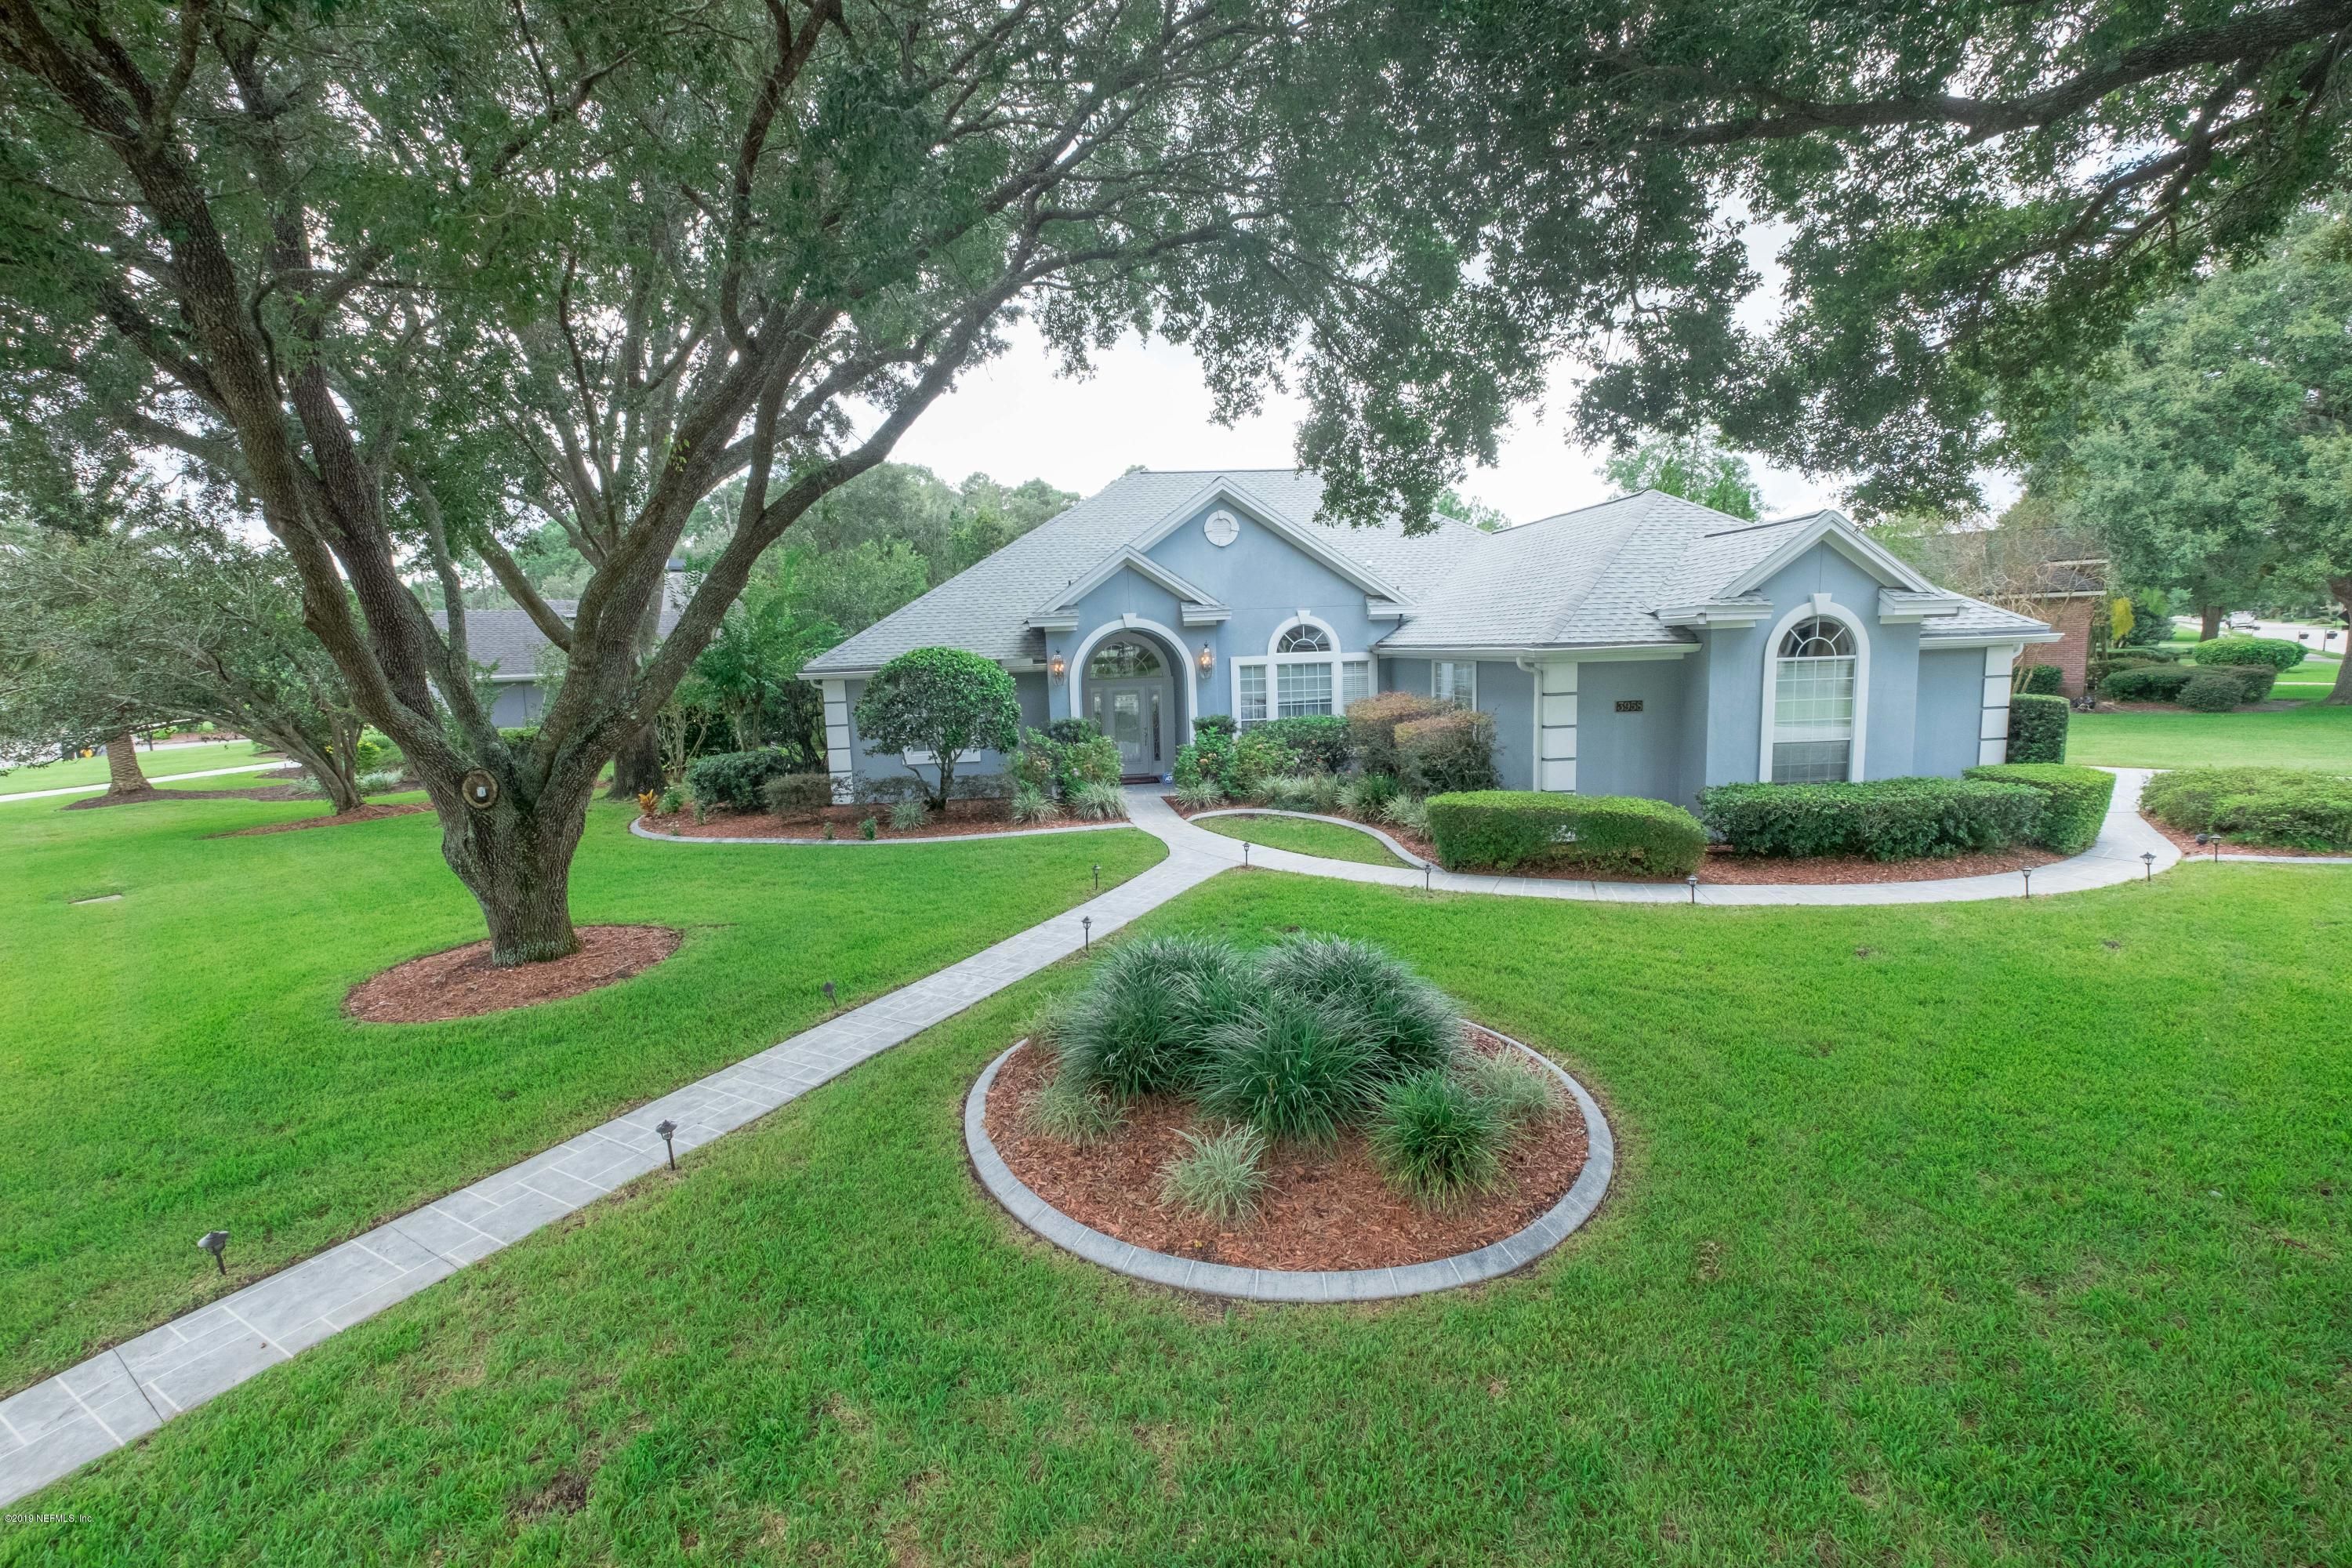 3958 JEBB ISLAND, JACKSONVILLE, FLORIDA 32224, 4 Bedrooms Bedrooms, ,3 BathroomsBathrooms,Residential - single family,For sale,JEBB ISLAND,1020130